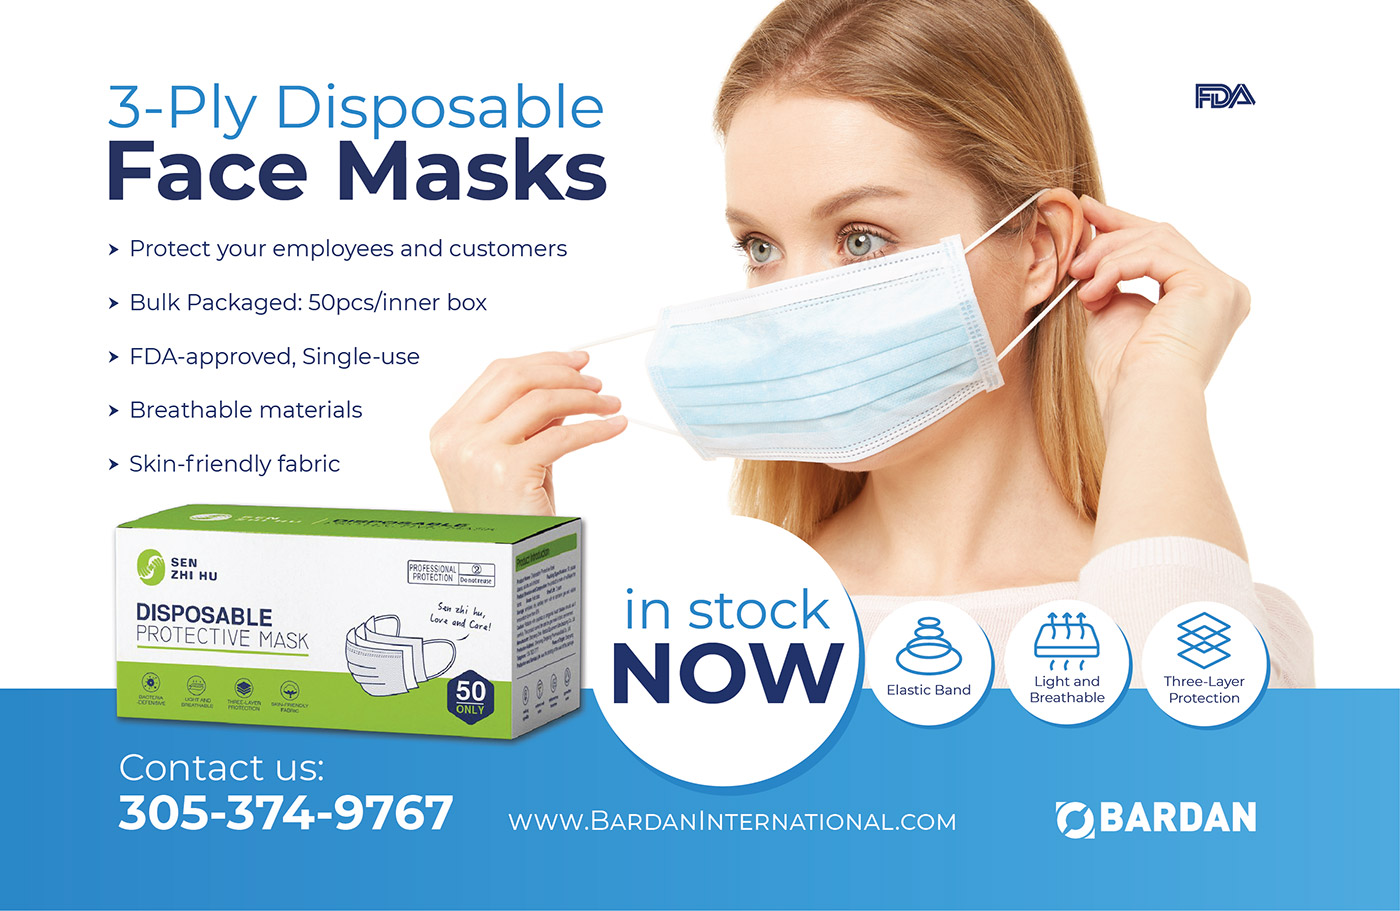 3-Ply Disposable Face Masks: Now in Stock